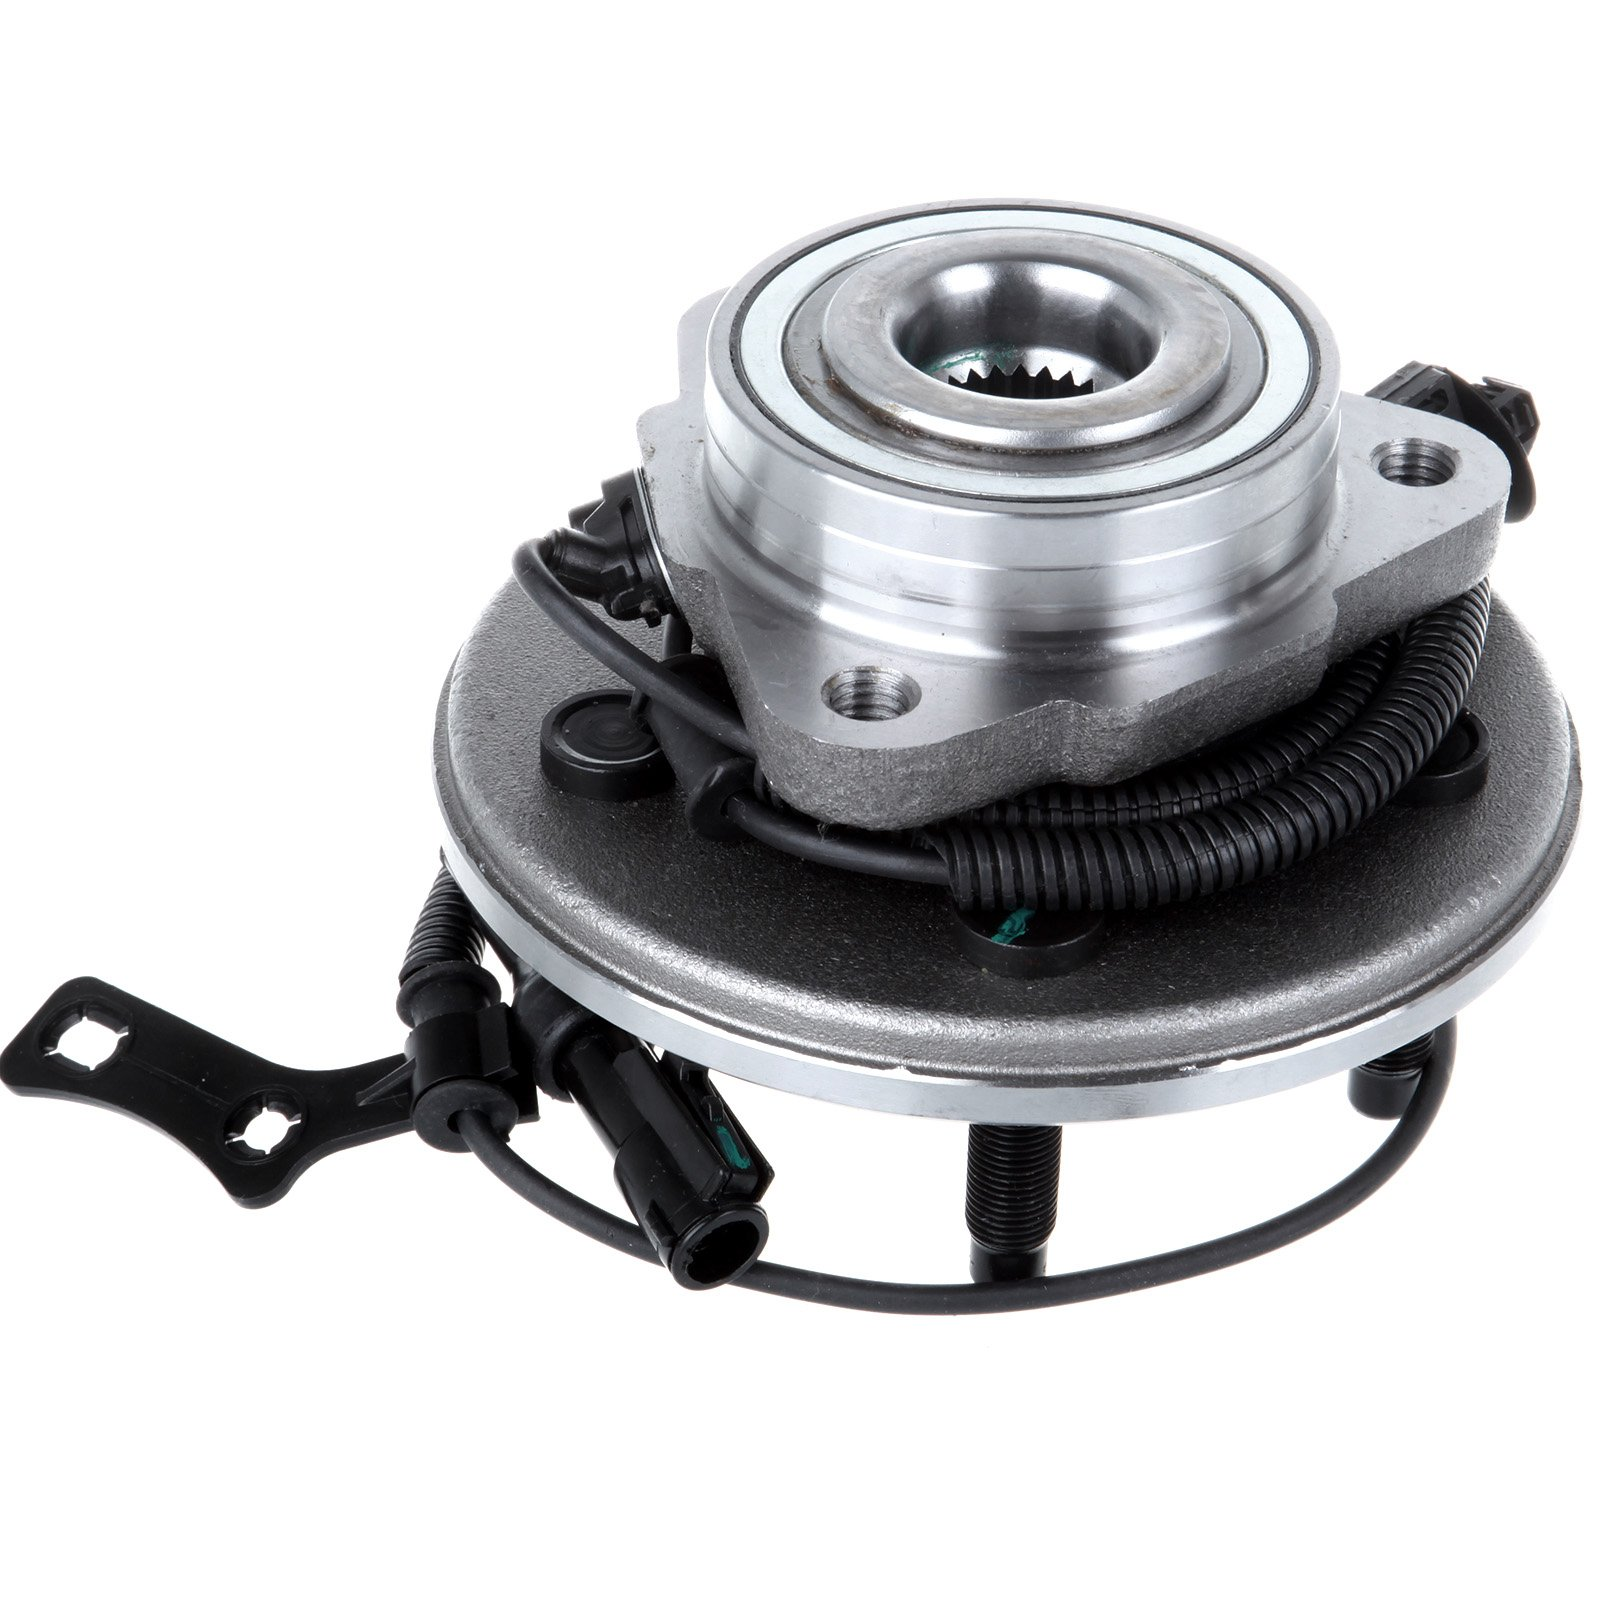 ECCPP Wheel Hub Bearing Assembly New Premium Bearing and Hub Assembly Front 5 Lugs W/ABS for Mercury Ford 2007-2009 Compatible with 515078